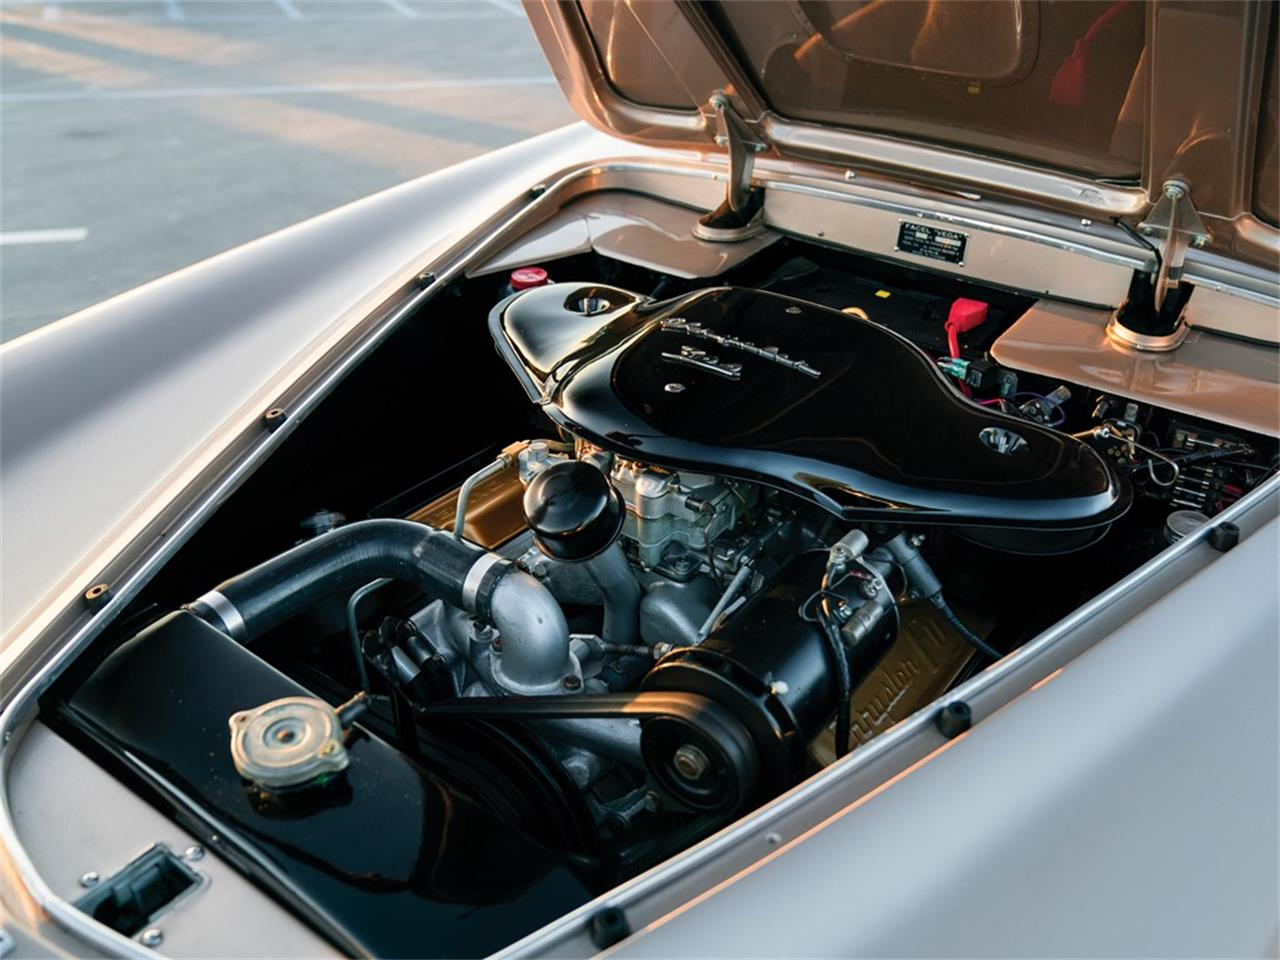 Large Picture of '58 FVS Auction Vehicle Offered by RM Sotheby's - Q2TL